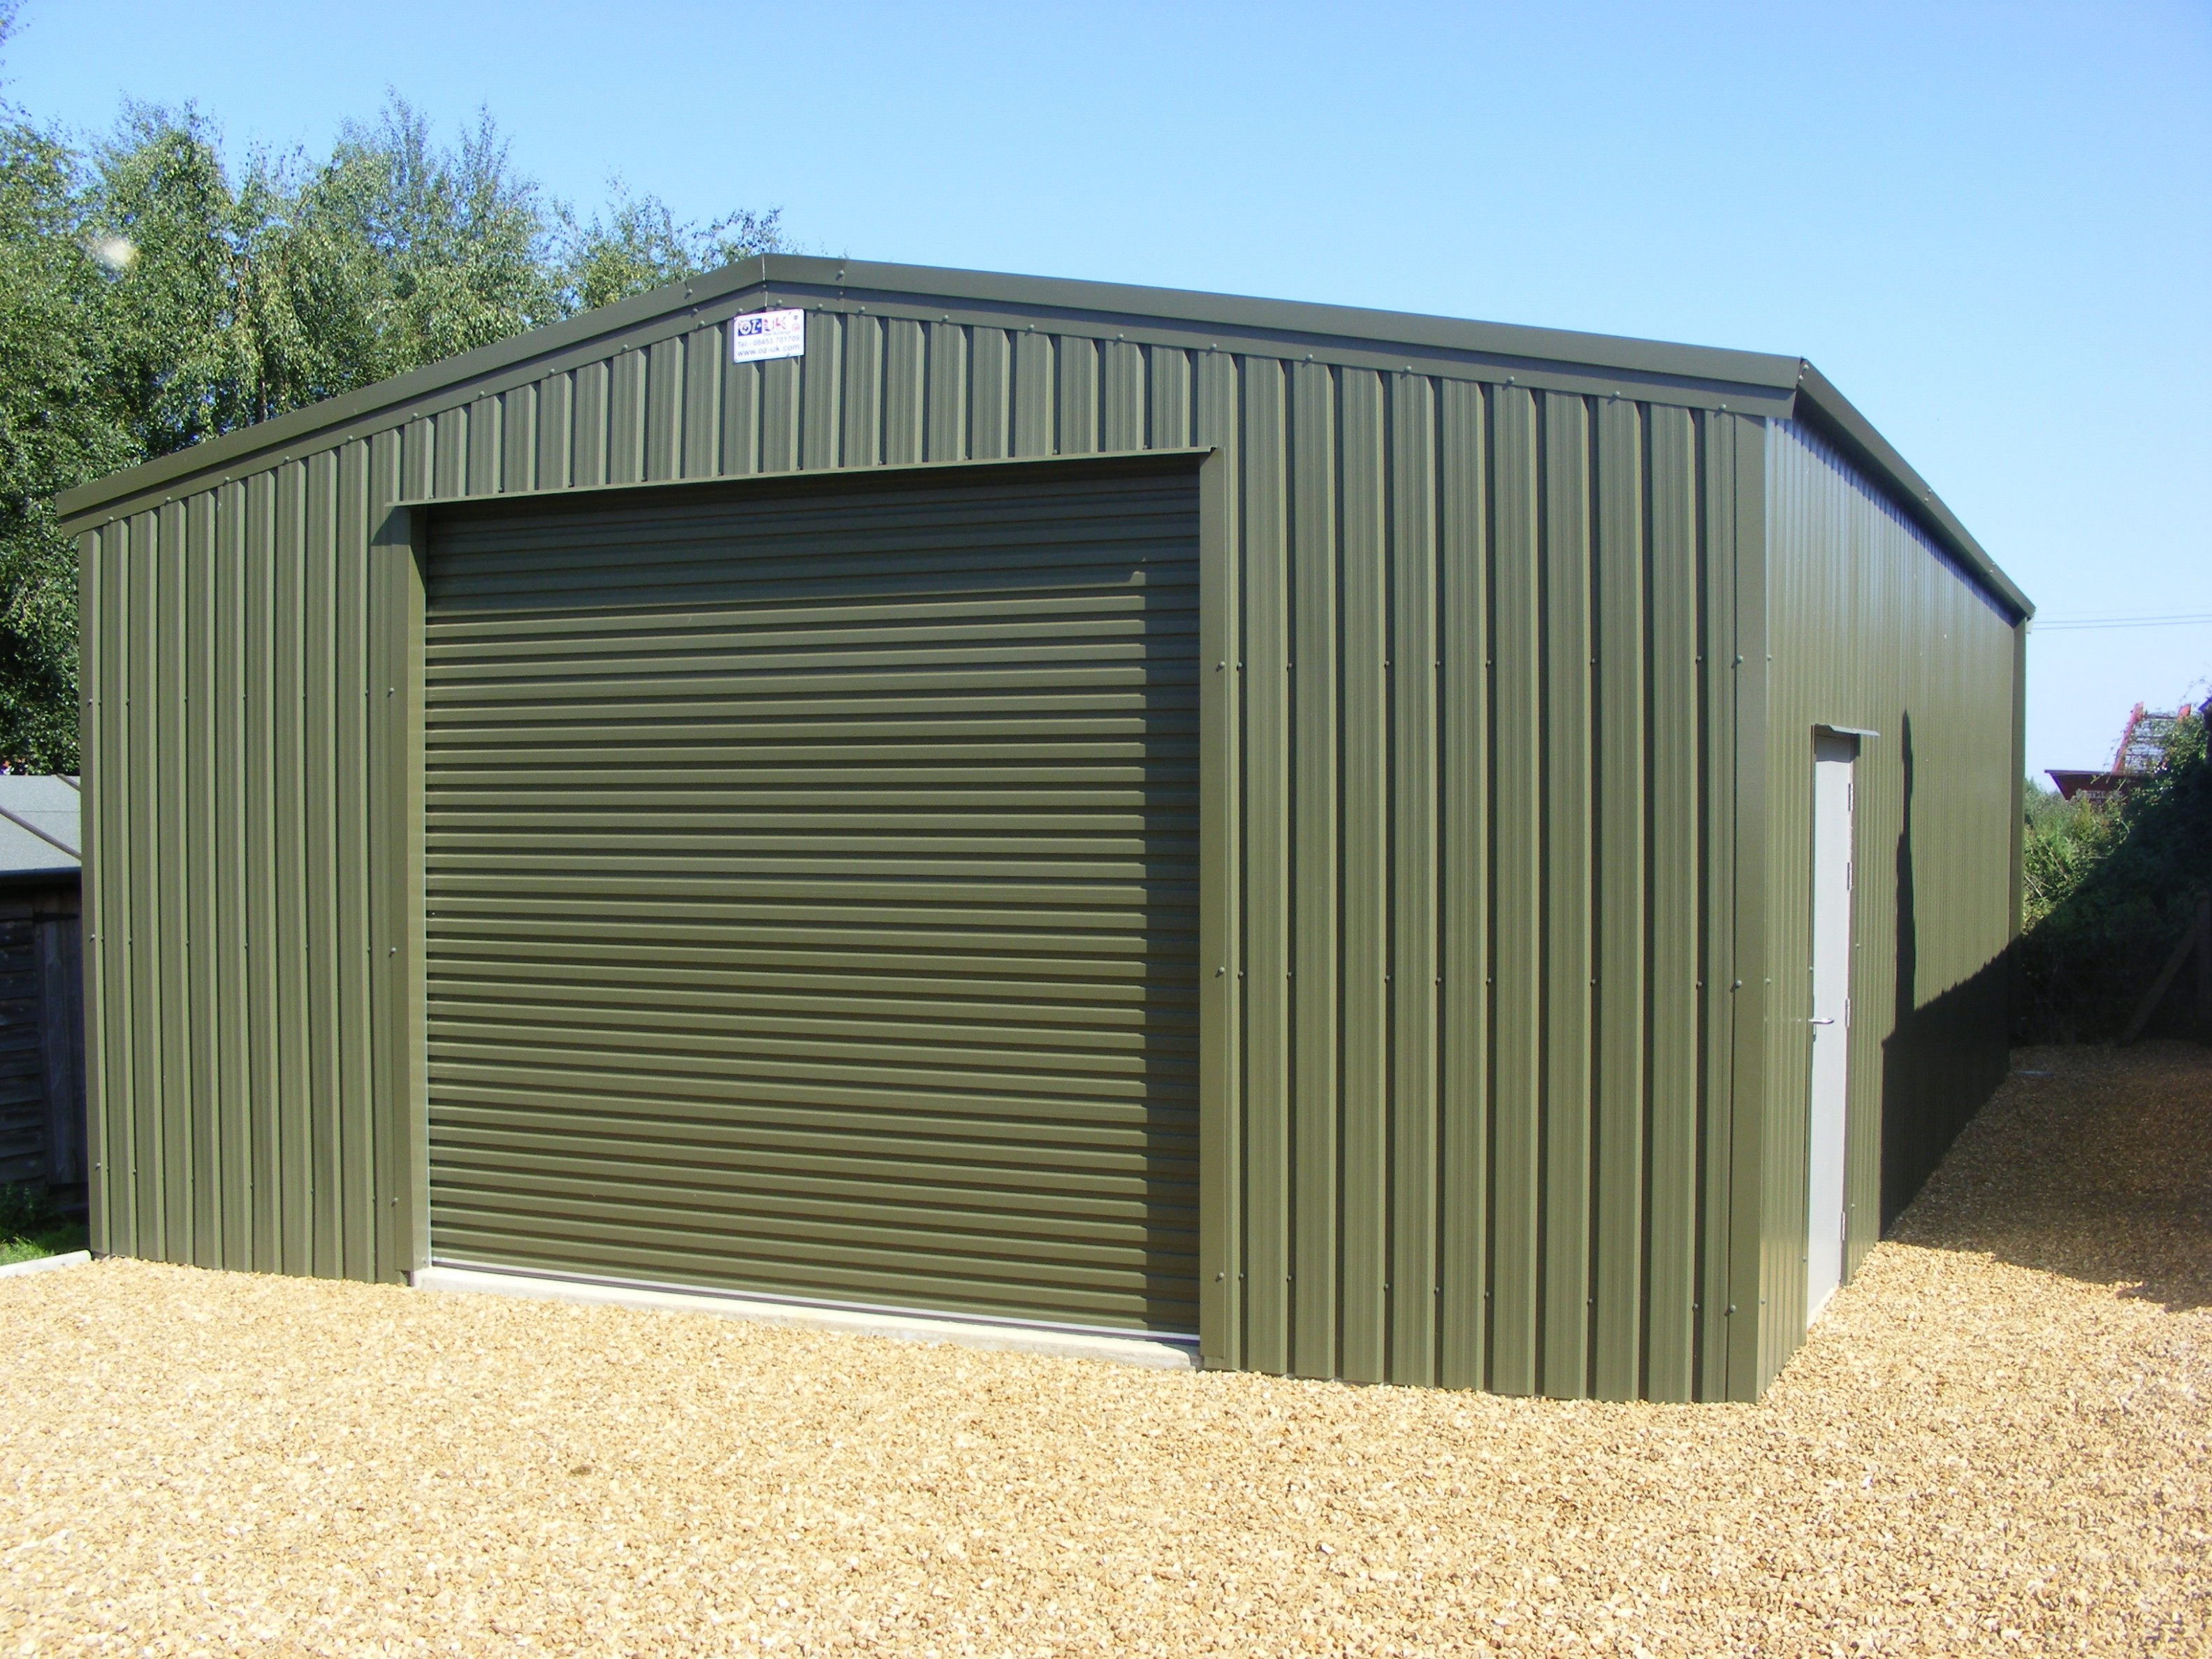 14 Simple (But Important) Things To Remember About Metal Sheds And Carports | metal sheds and carports